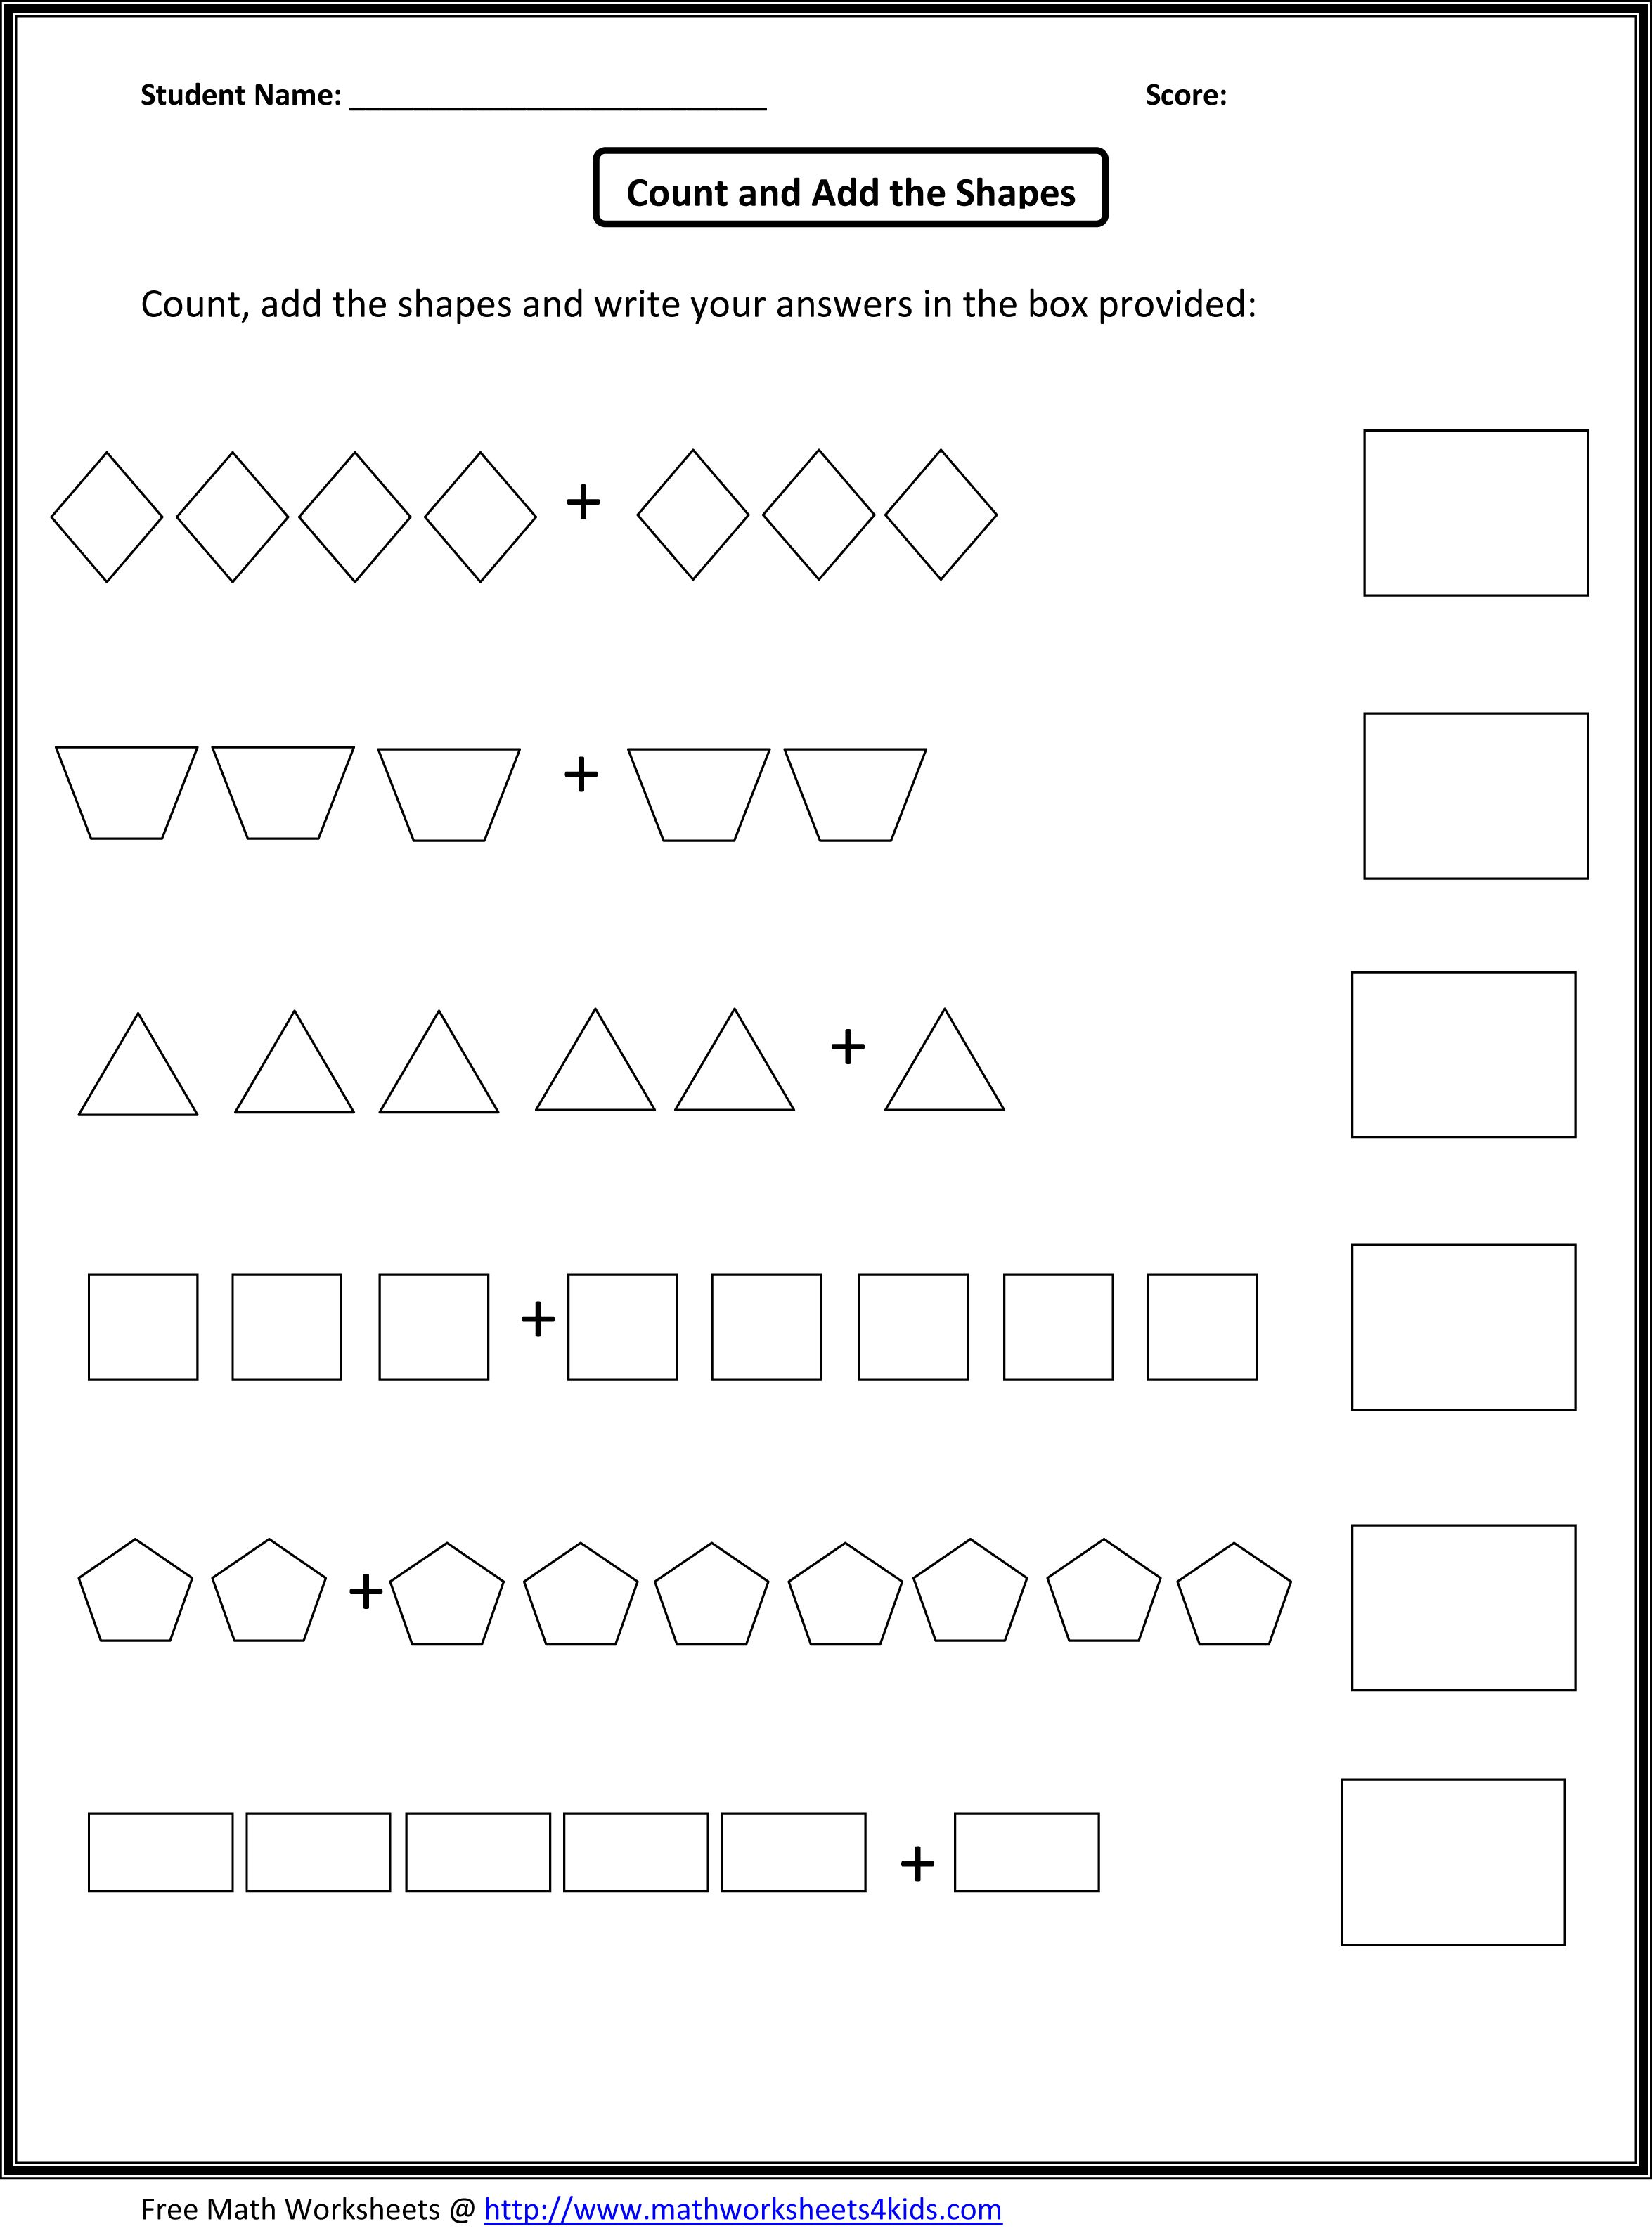 Printable K5 Math Worksheets